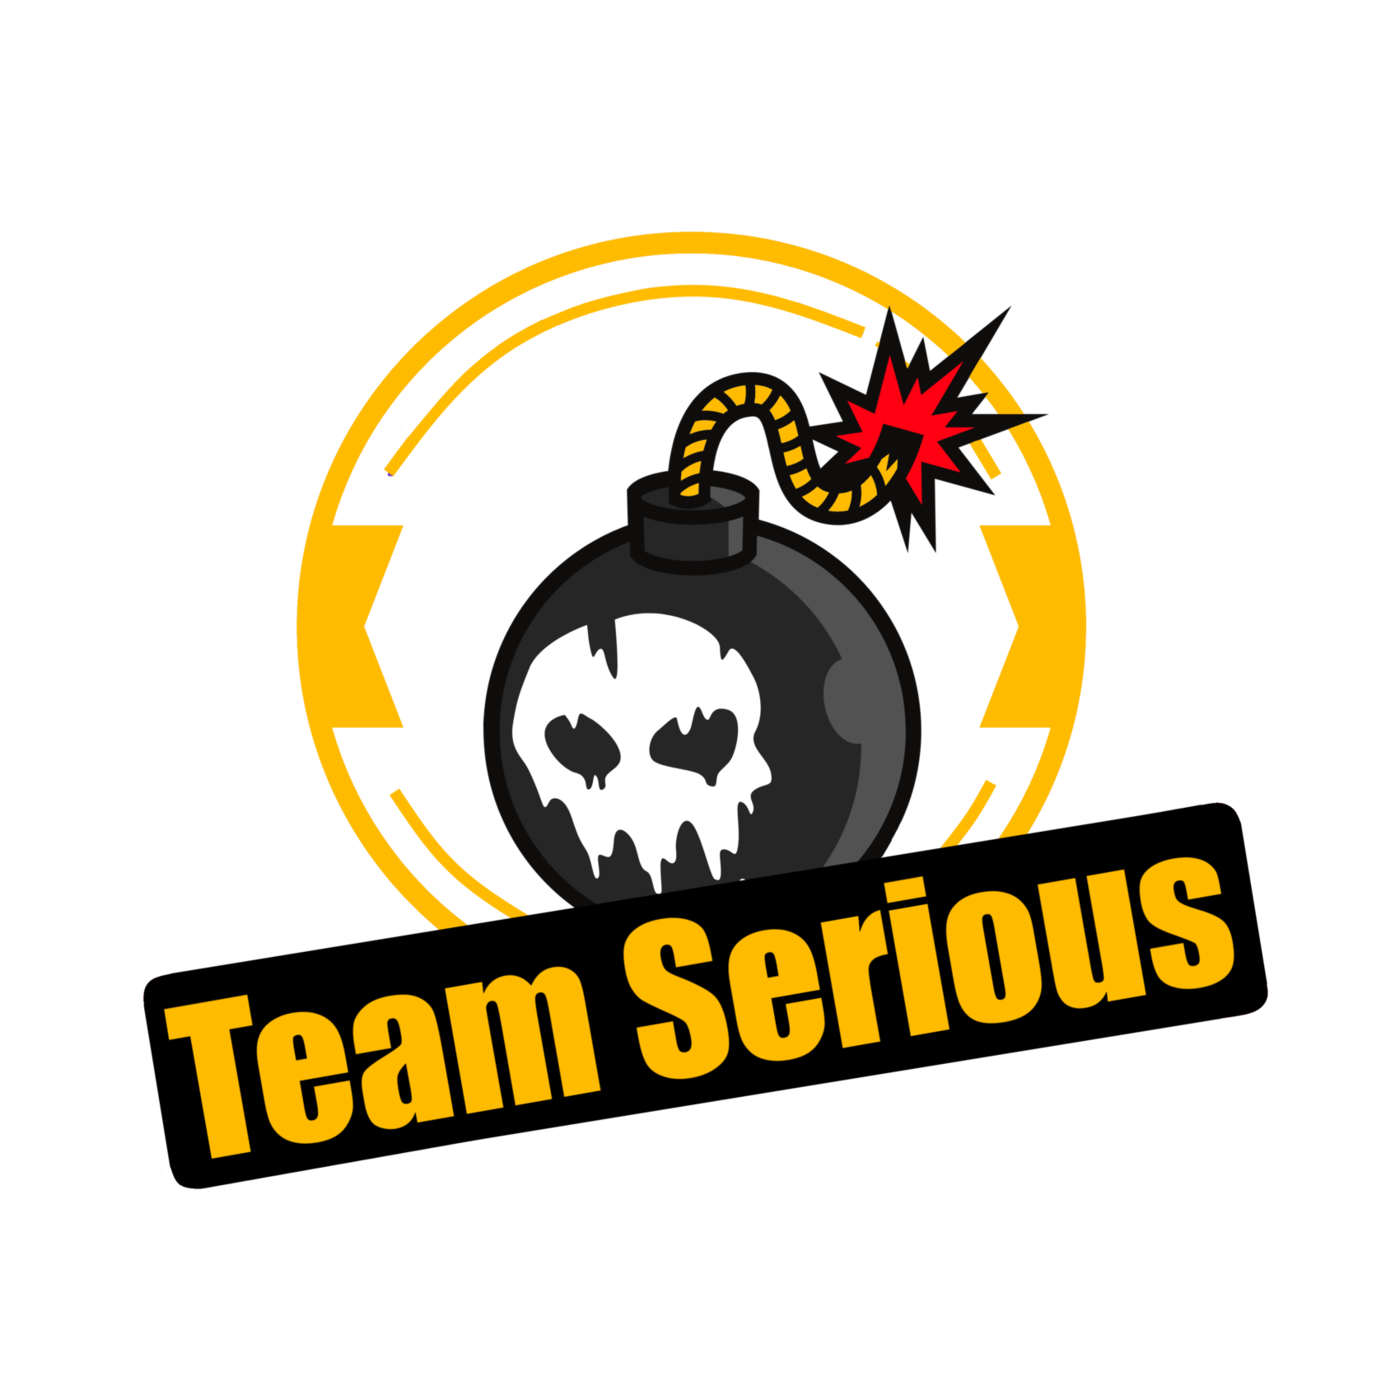 Team Serious DFW Talks - Chill Edition (Serious Ladies)